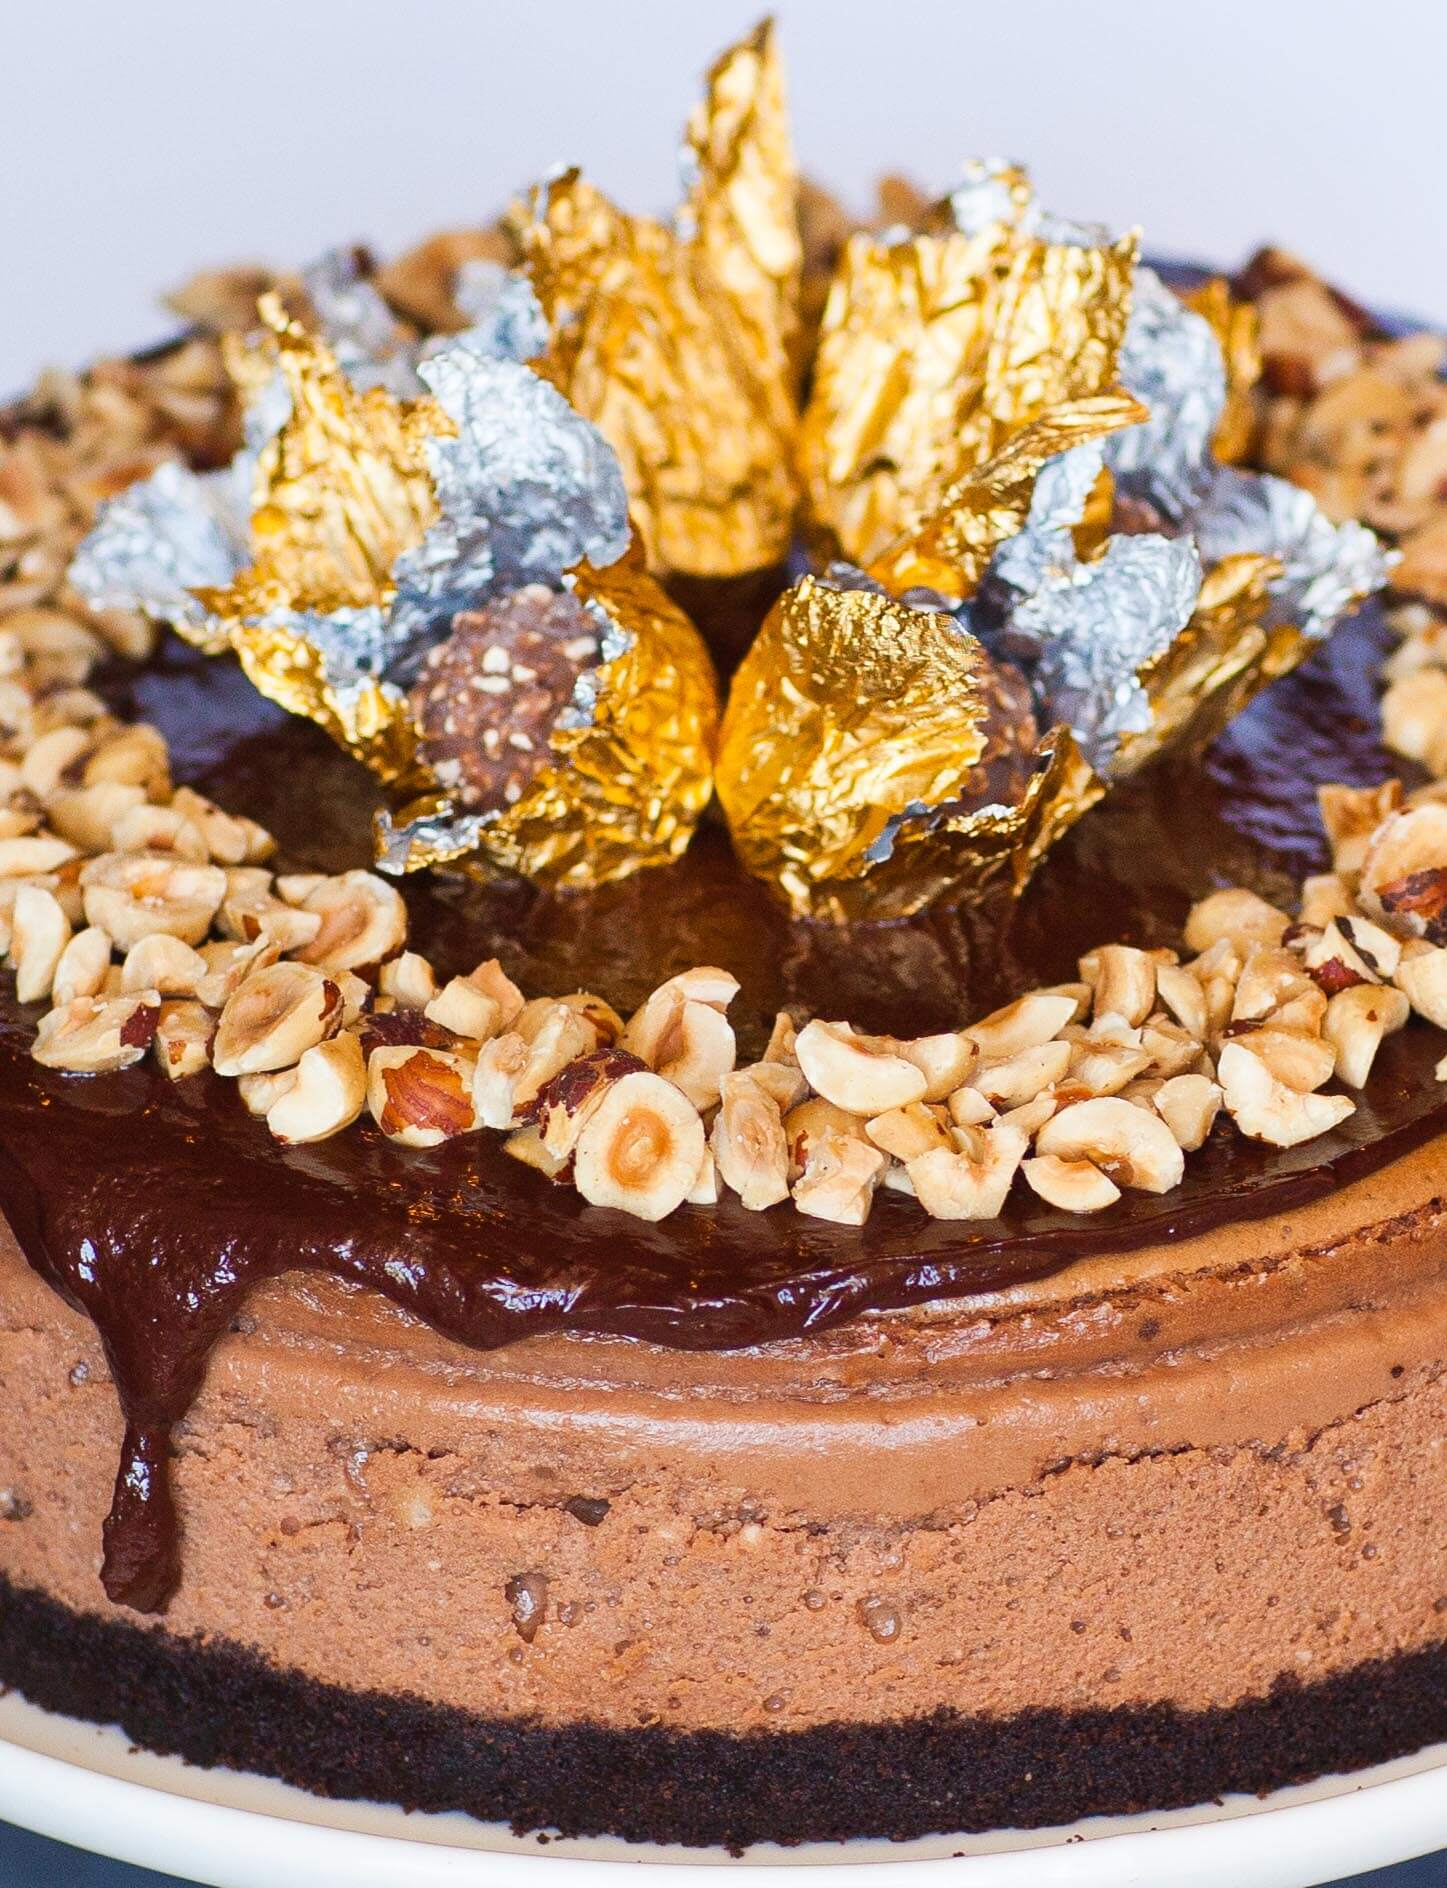 Chocolate Ferrero Rocher Cake Nutella Ganache Recipe